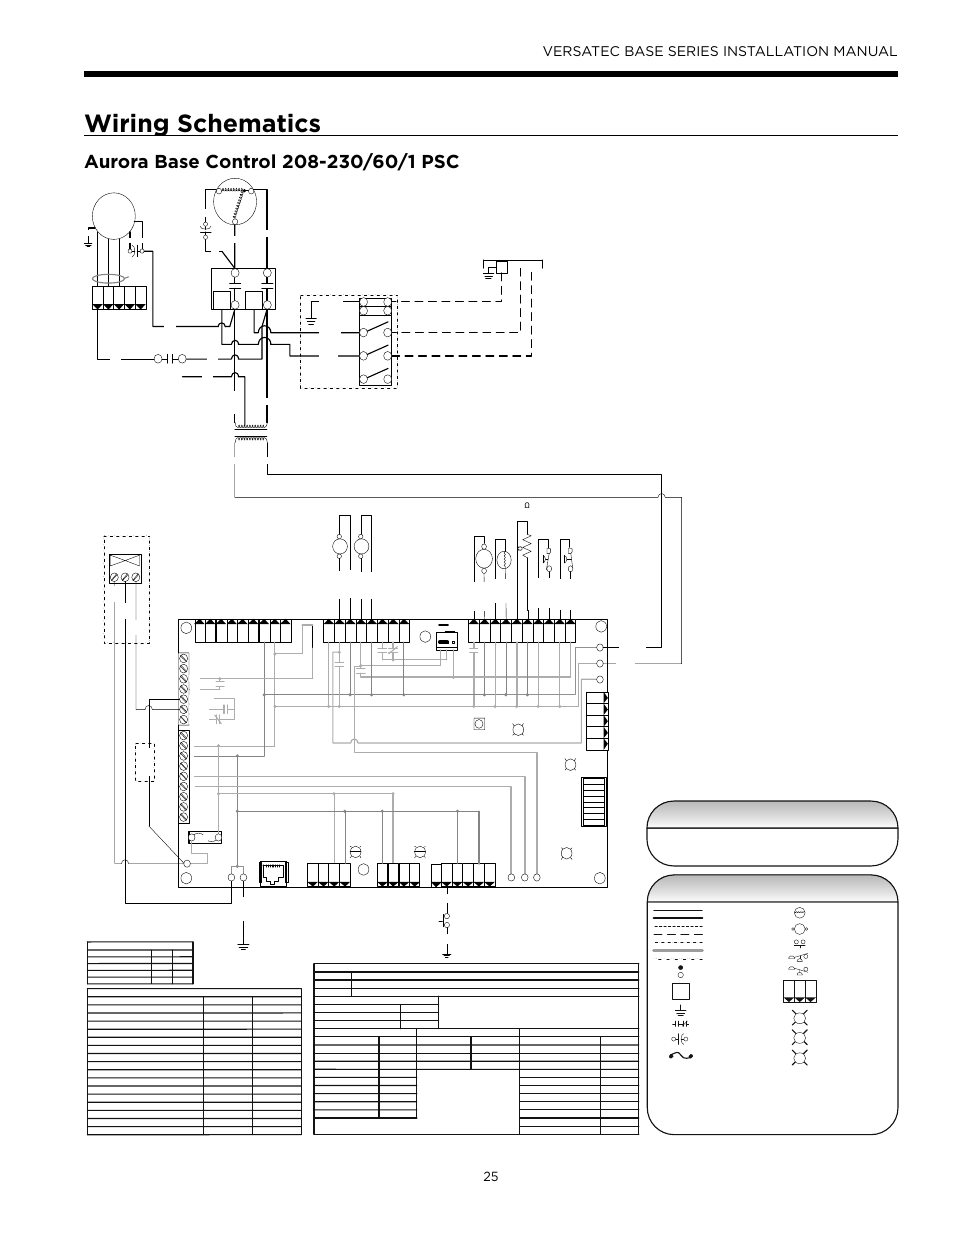 wiring schematics  versatec base series installation